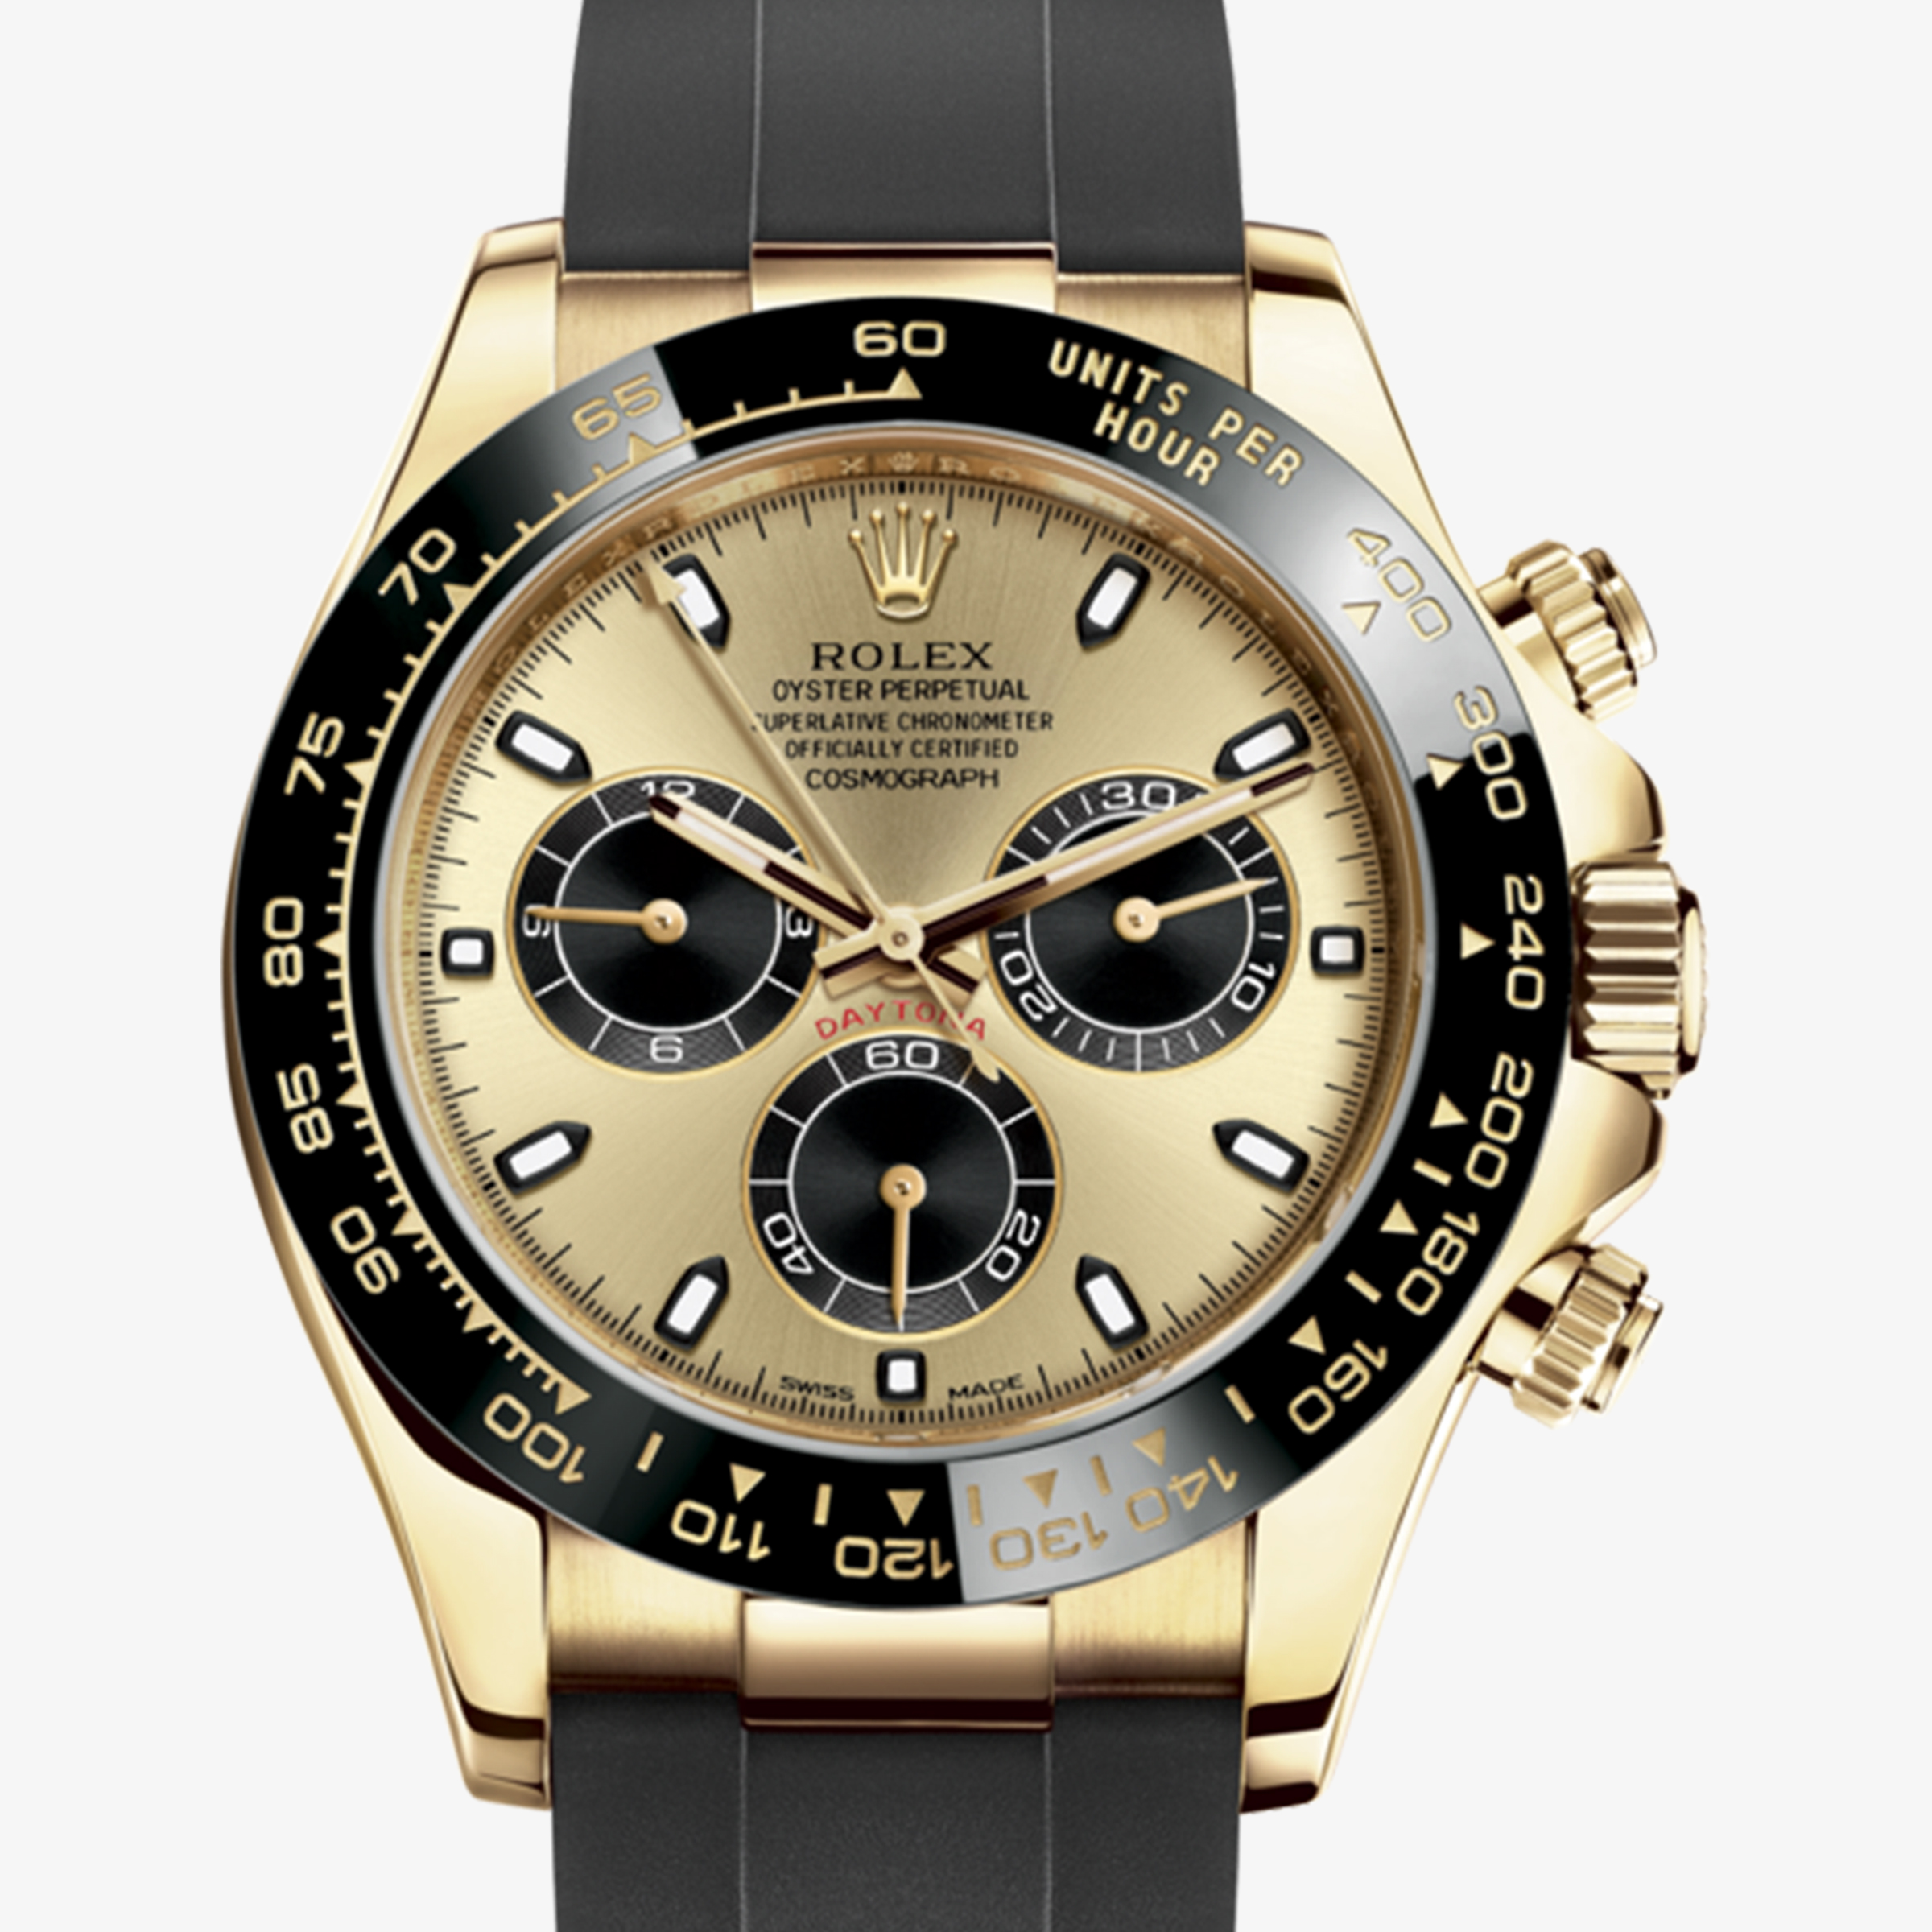 Rolex Cosmograph Daytona Oyster 40 Mm Yellow Gold M116518ln 0048